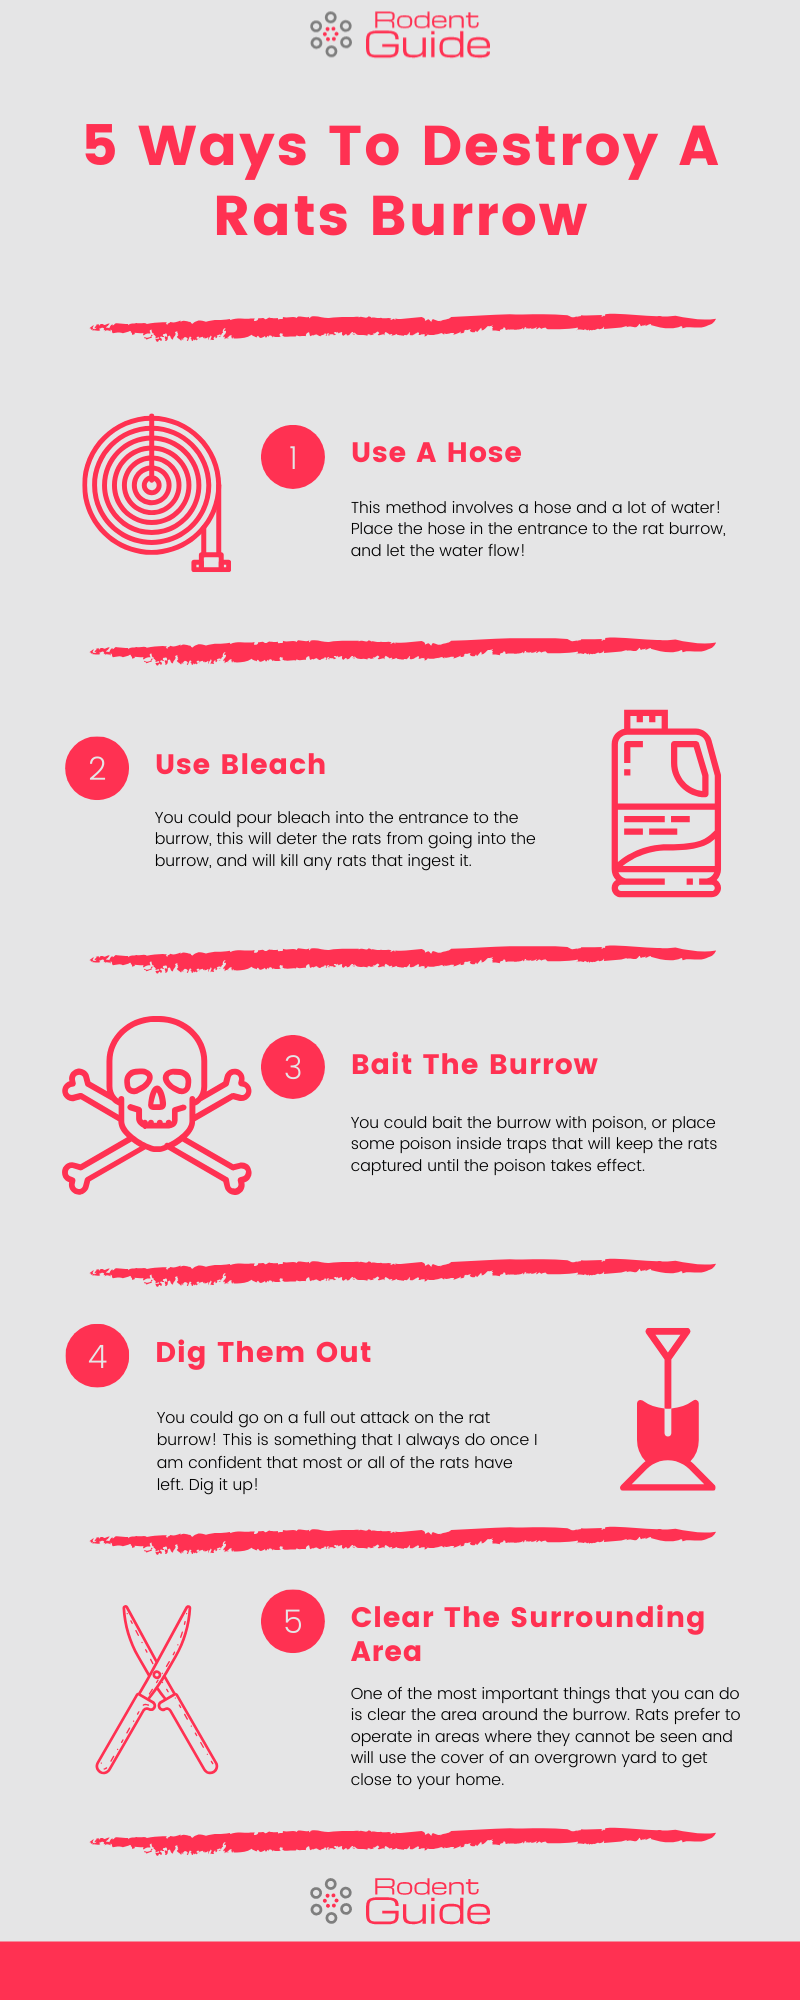 Ways To Destroy A Rats Burrow Infographic